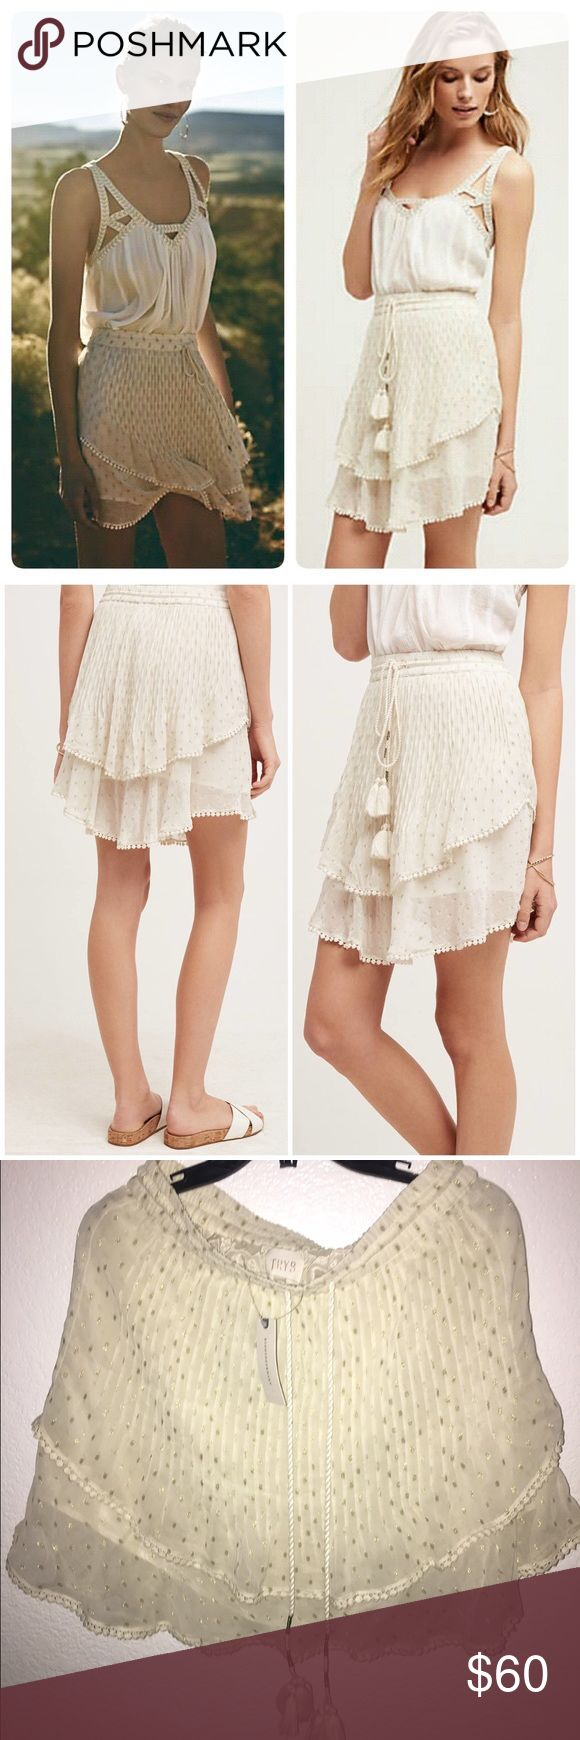 """BNWT Anthropolgie Tryb Skirt This is a NWT Anthropologie brand """"Tryb""""  the Primrose Skirt. I bought it without trying on and it doesn't suit me, then I forgot to return! My $118 loss your gain!! It's gorgeous and would fit a 8-10 in my opinion though there is no official size other than L, also I believe the waistband runs smaller like an M.❗️Price is firm. I will not measure. No Trades!❗️✔️Offers ok! No lowballing 😘 read my closet rules for more info on my policies.☺️❤ Anthropologie Skirts"""